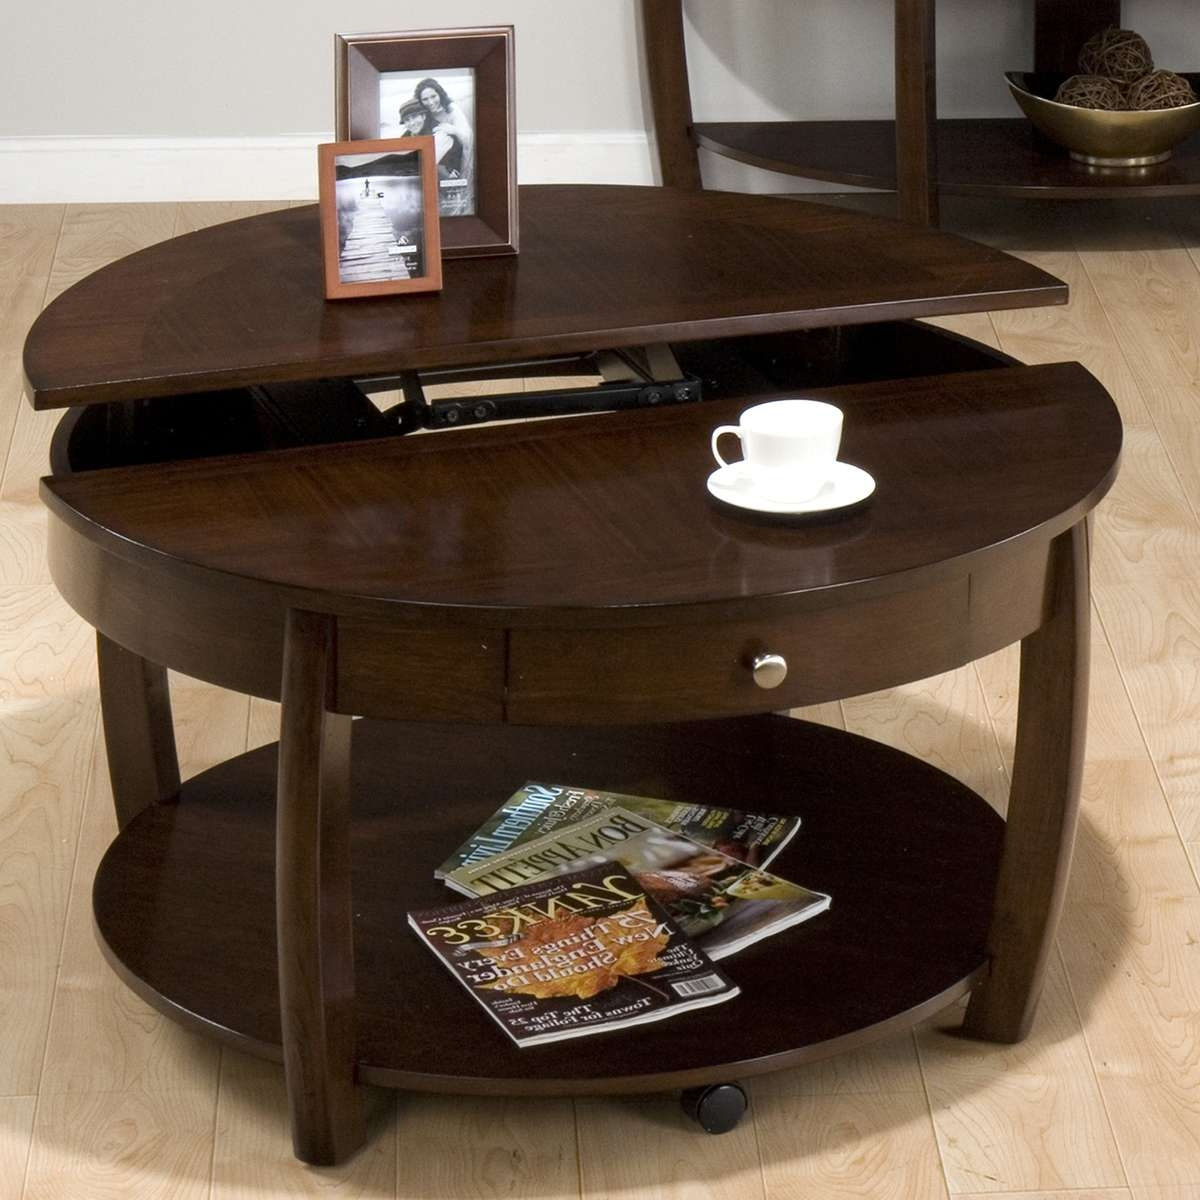 Well Liked Round Coffee Tables With Storages With Regard To The Round Coffee Tables With Storage – The Simple And Compact (View 20 of 20)